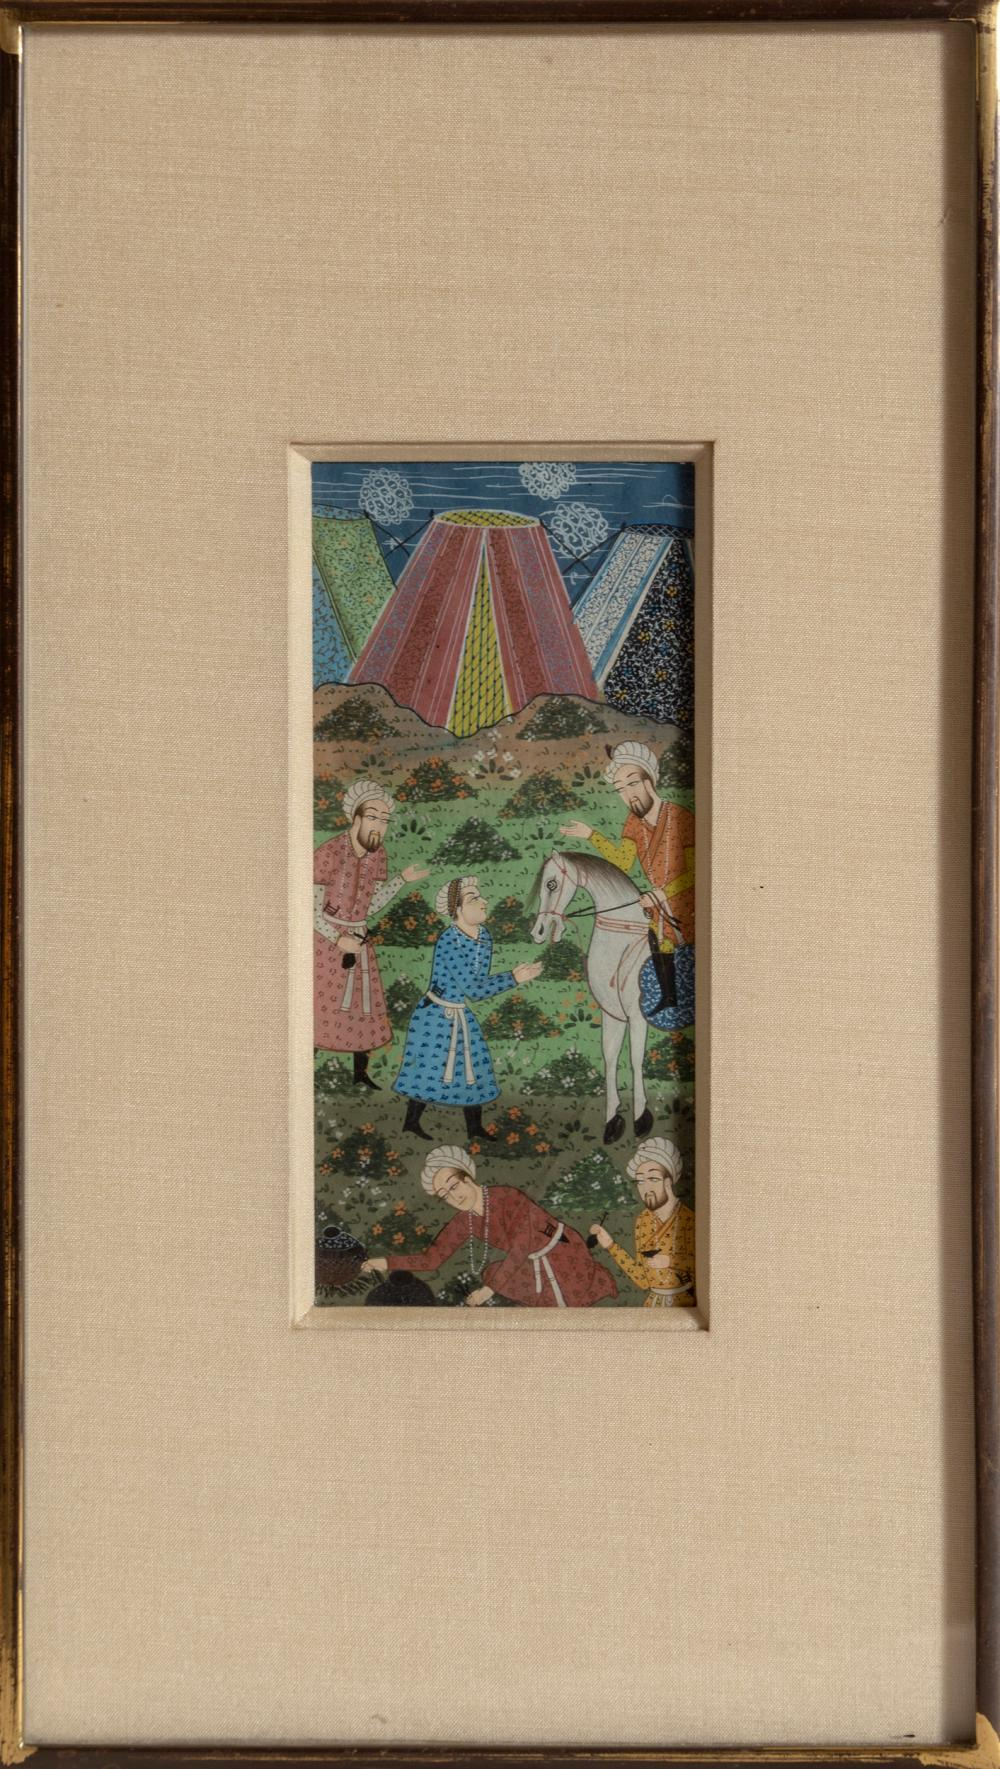 Indian, Fieldworkers, Goauche on Paper